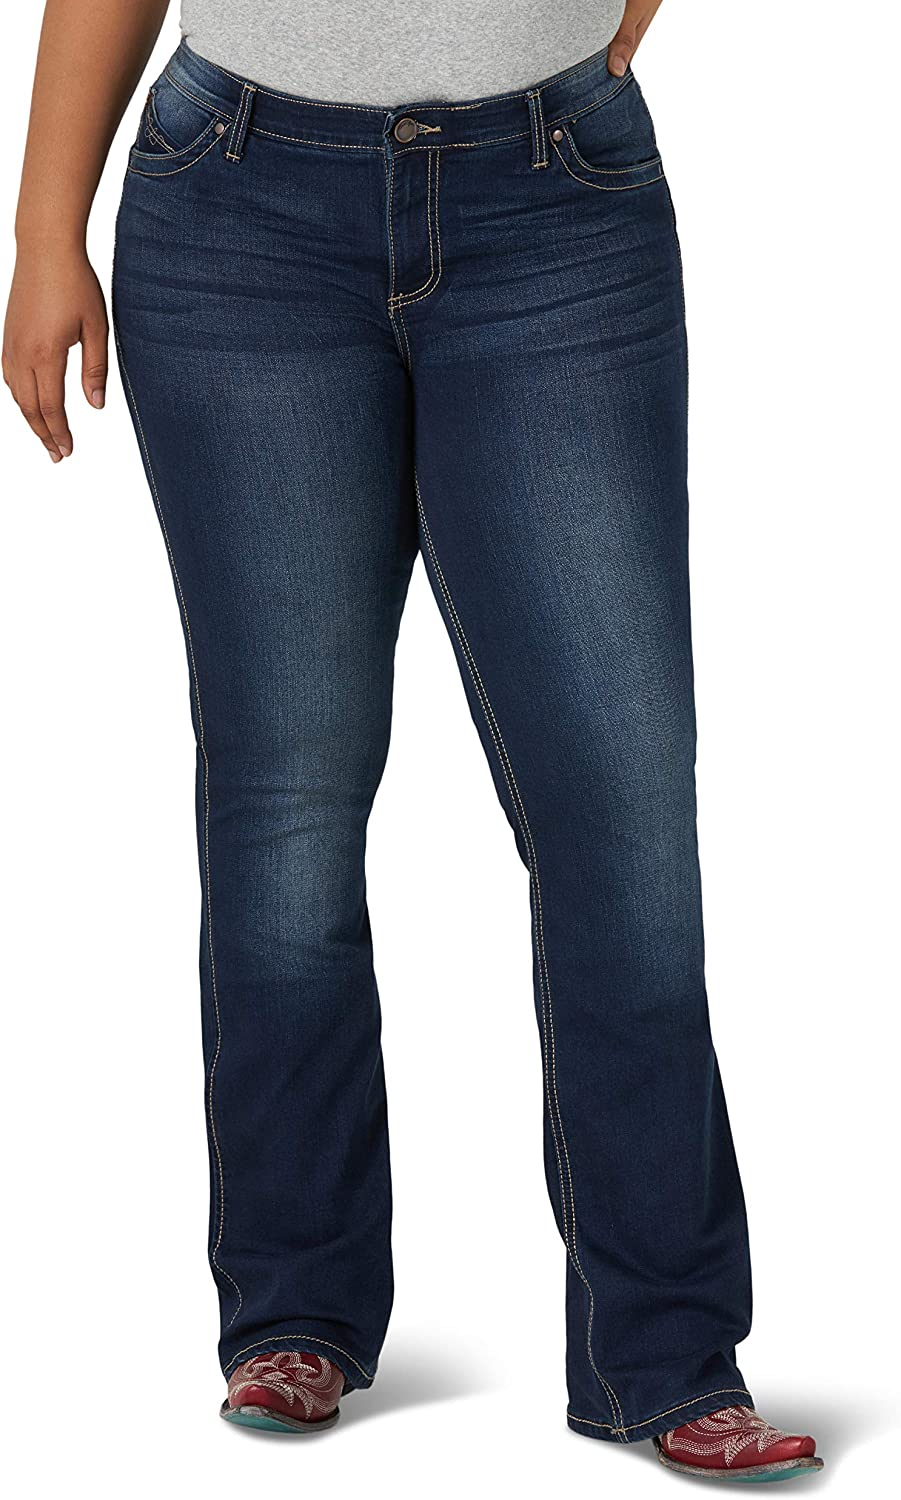 Wrangler Women's Plus Size Q-Baby Mid Rise Boot Cut Ultimate Riding Jean